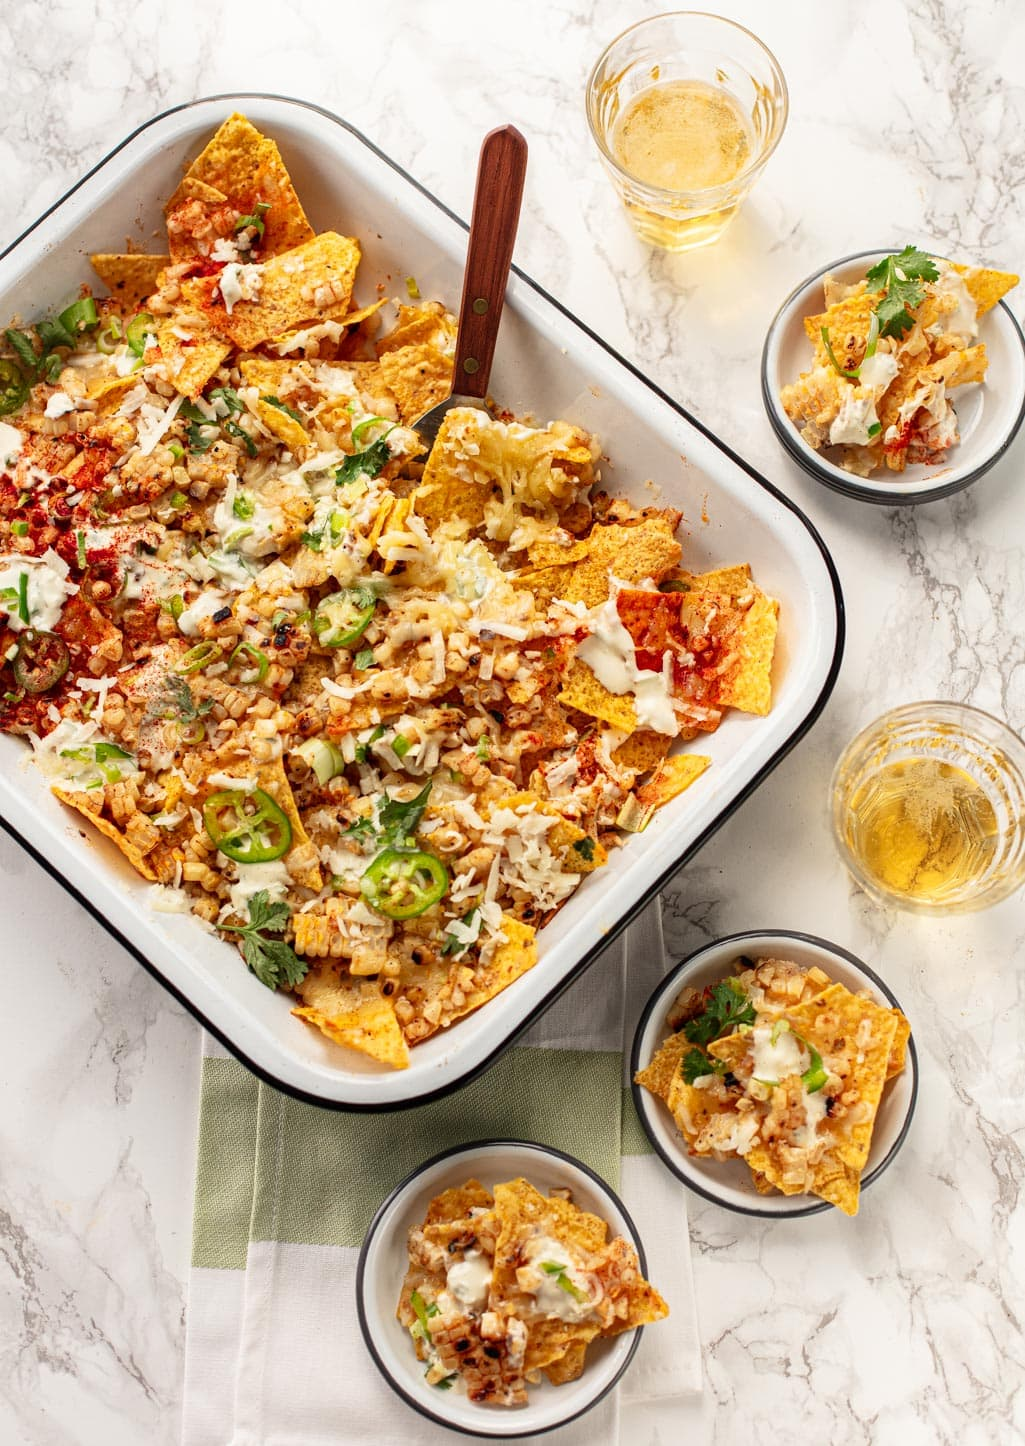 Mexican Corn Nachos with cheese and crema with glasses of beer on the side.